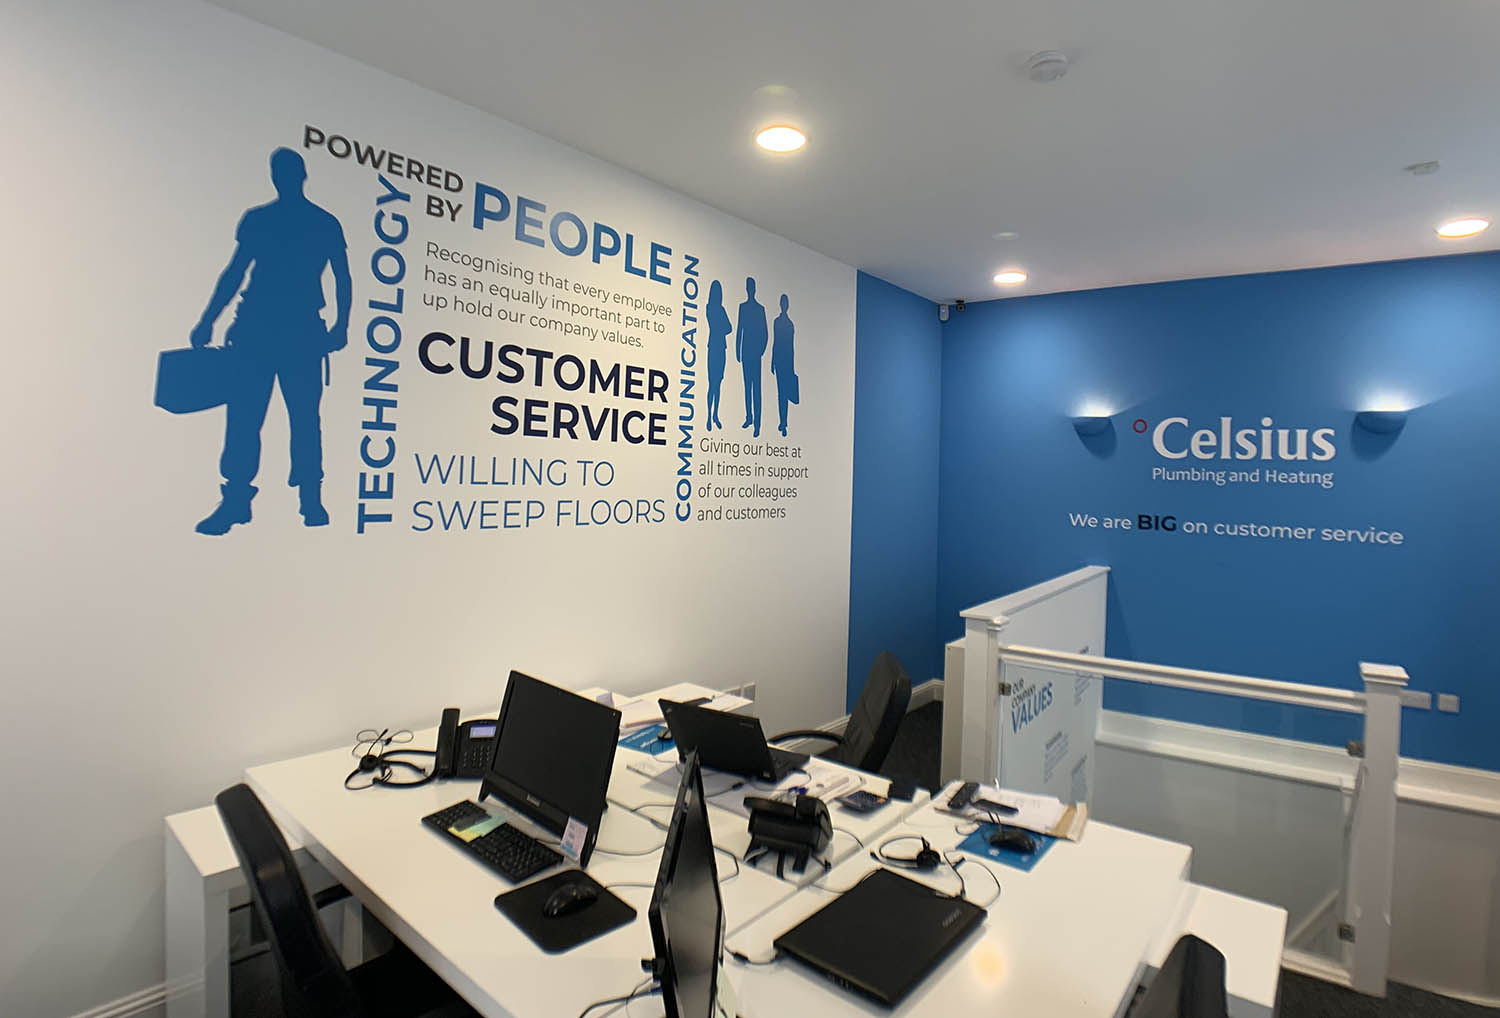 Celsius Plumbing & Heating Musselburgh Internal Office Signage